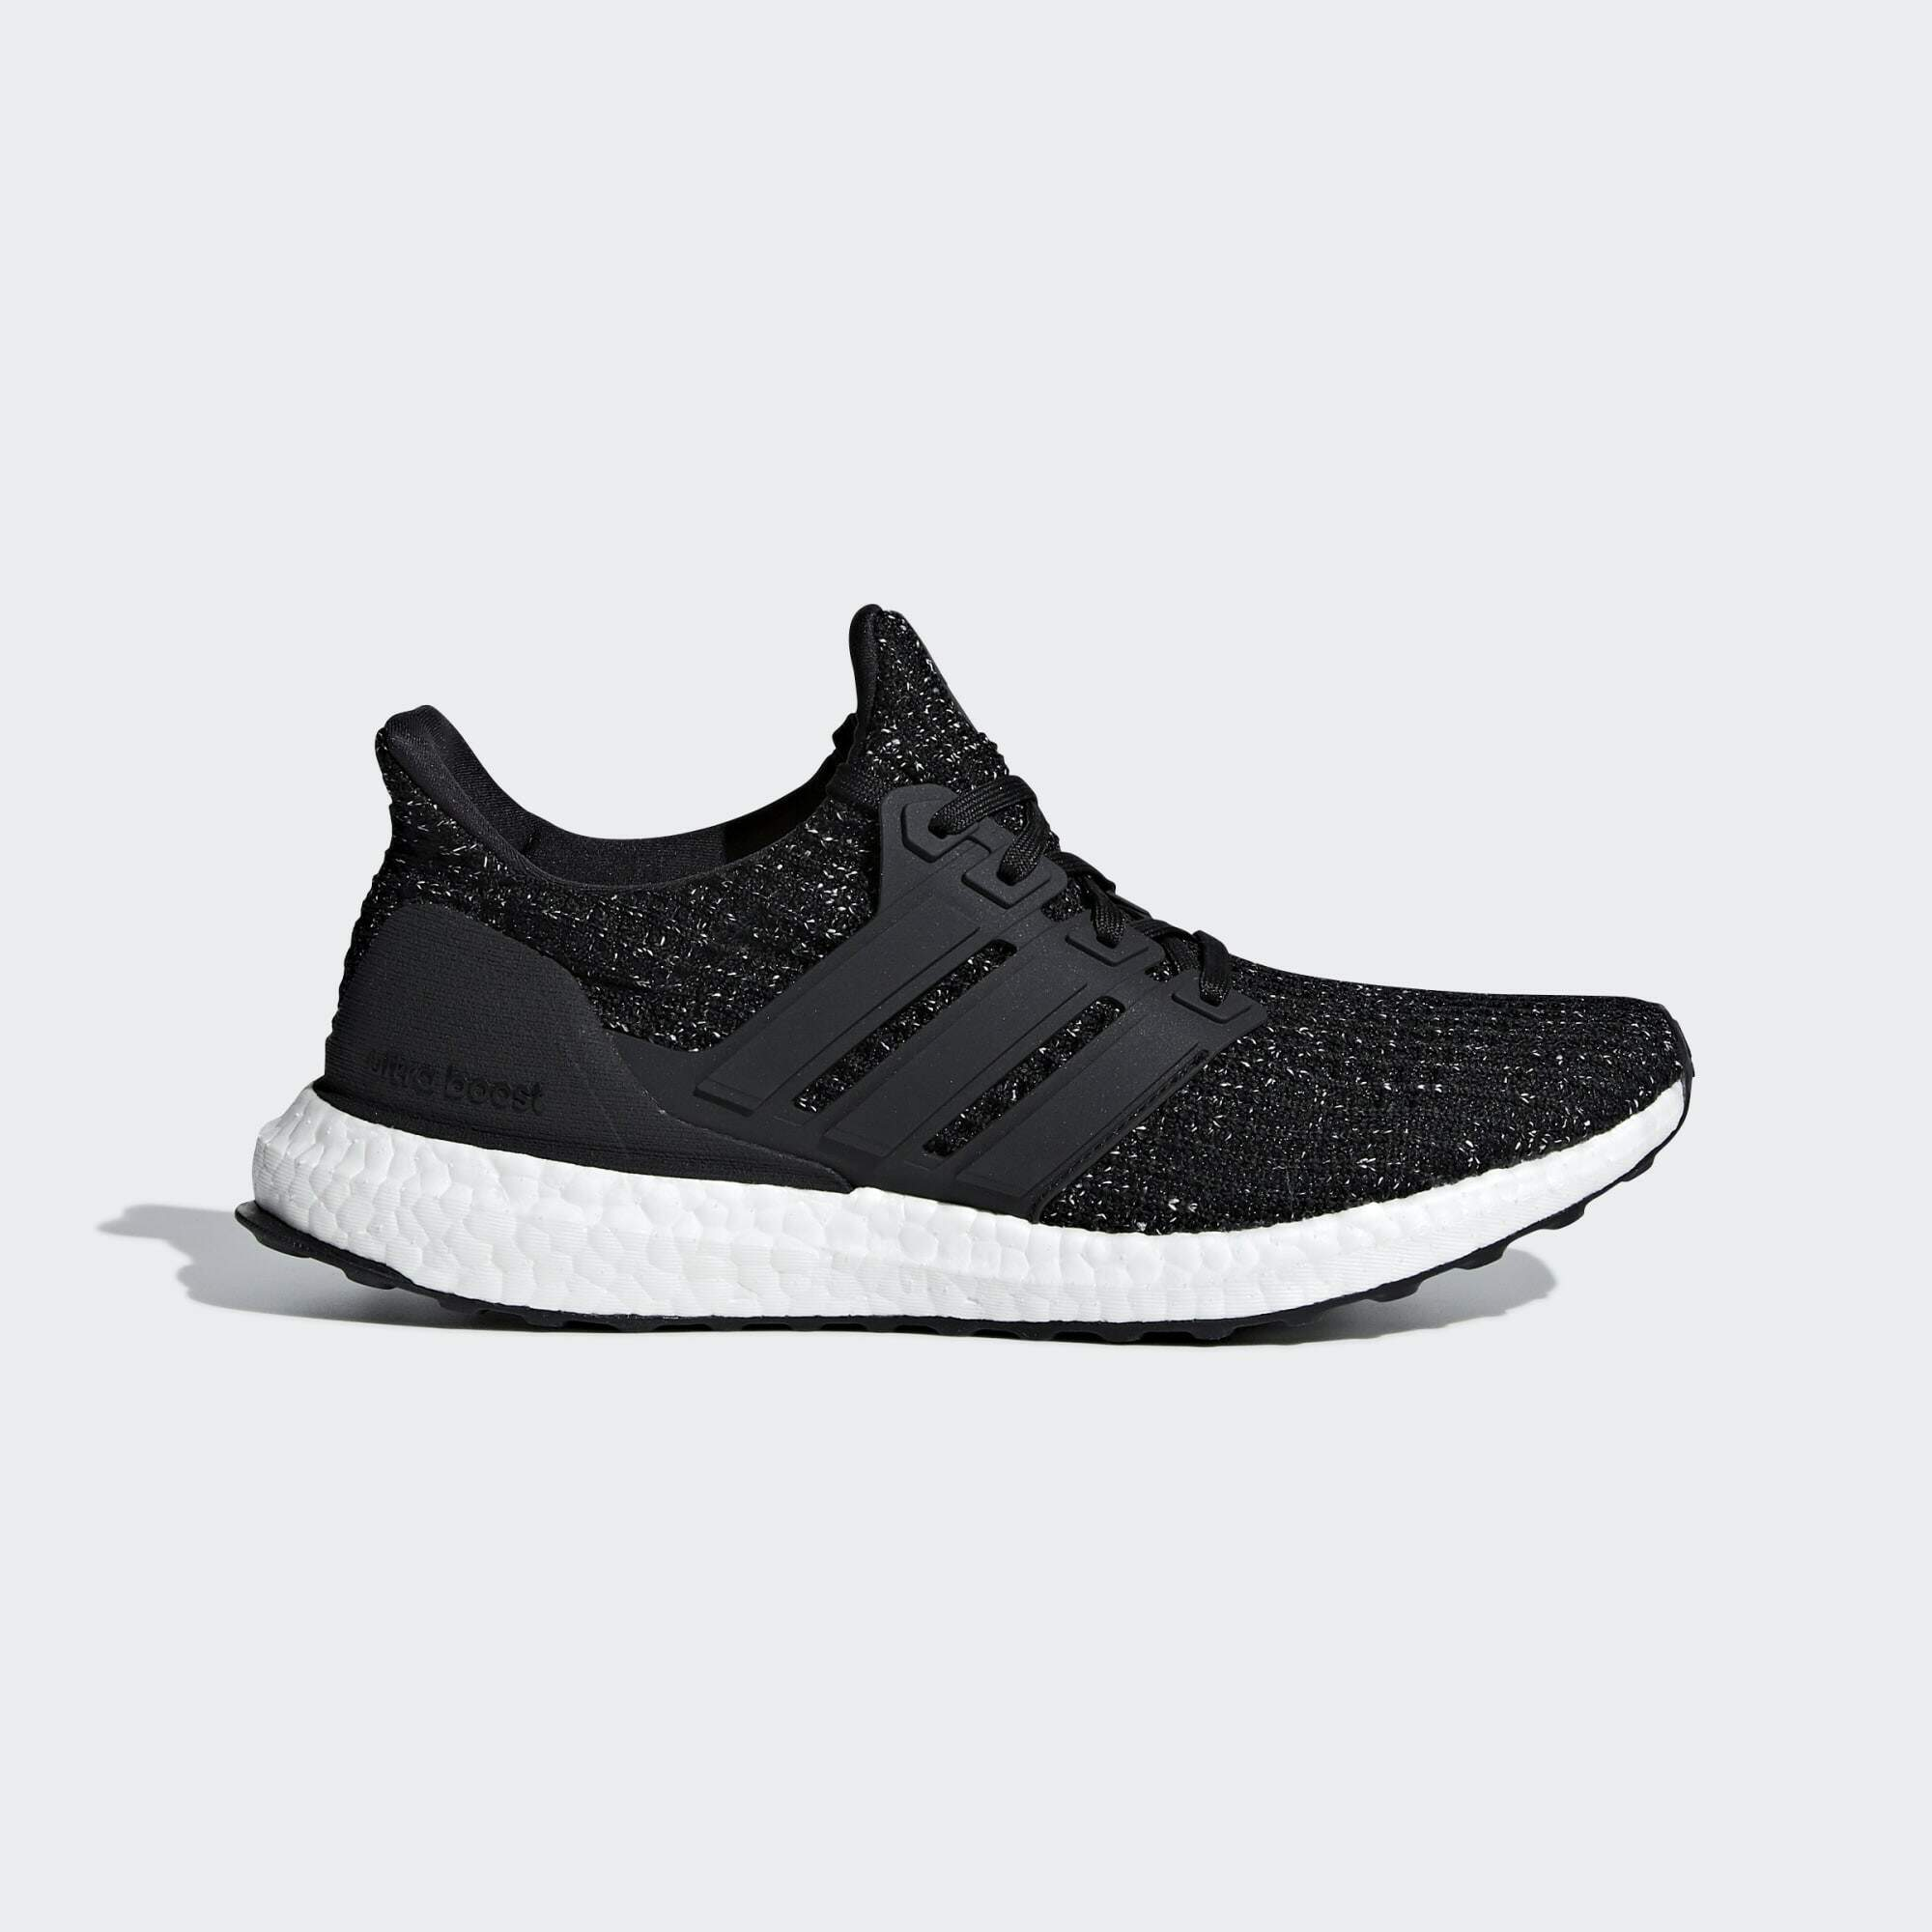 uk cheap sale cheaper running shoes Tênis Adidas Ultra Boost 4.0 Feminino